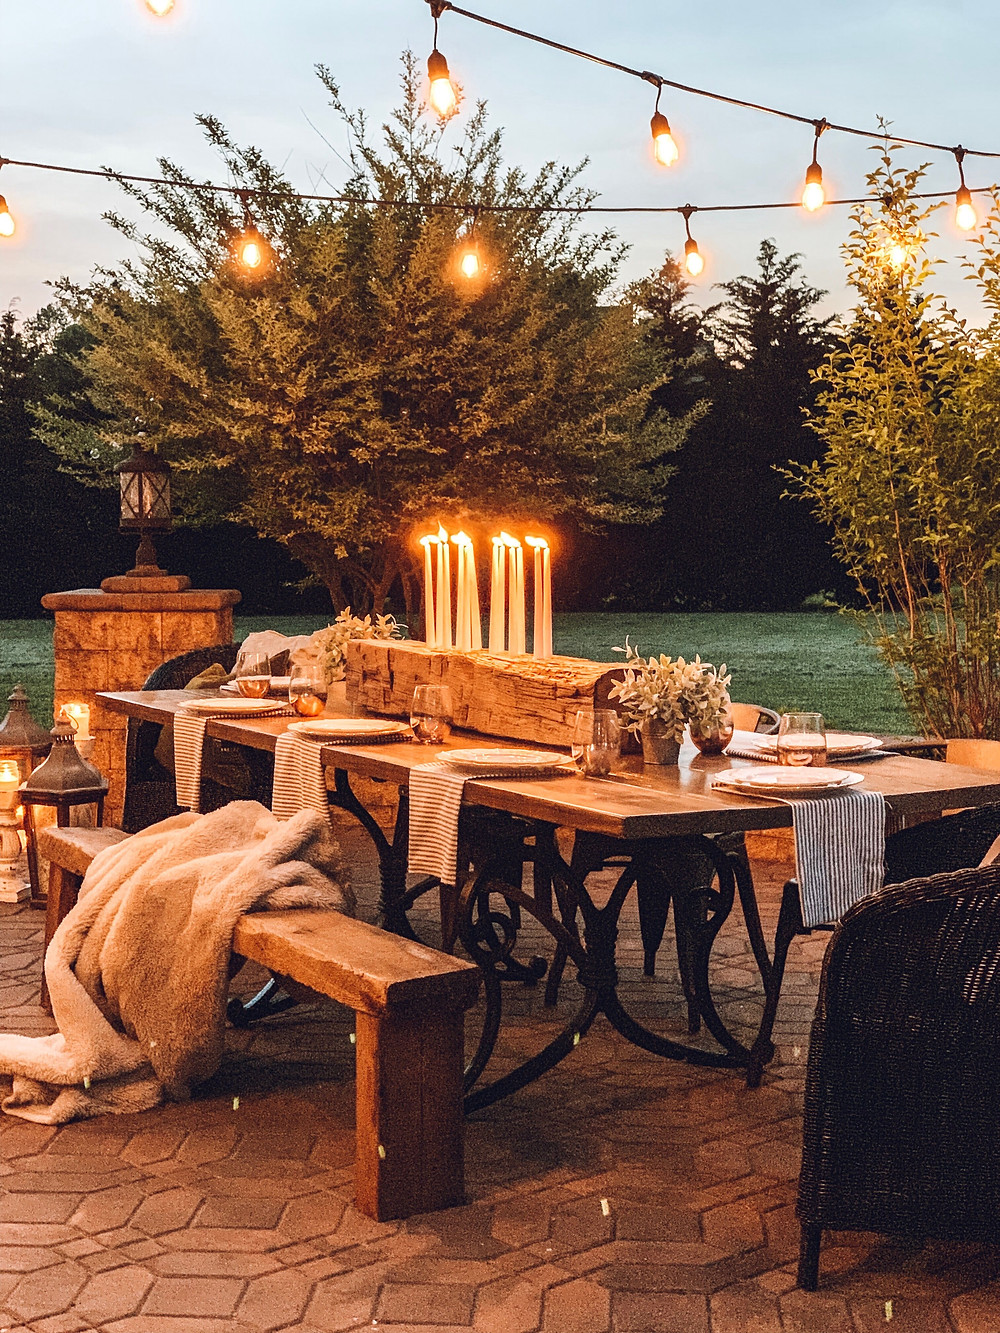 patio makeover, patio refresh, outdoor dining, simple farmhouse decor, the simple farmhouse, DIY outdoor dining space